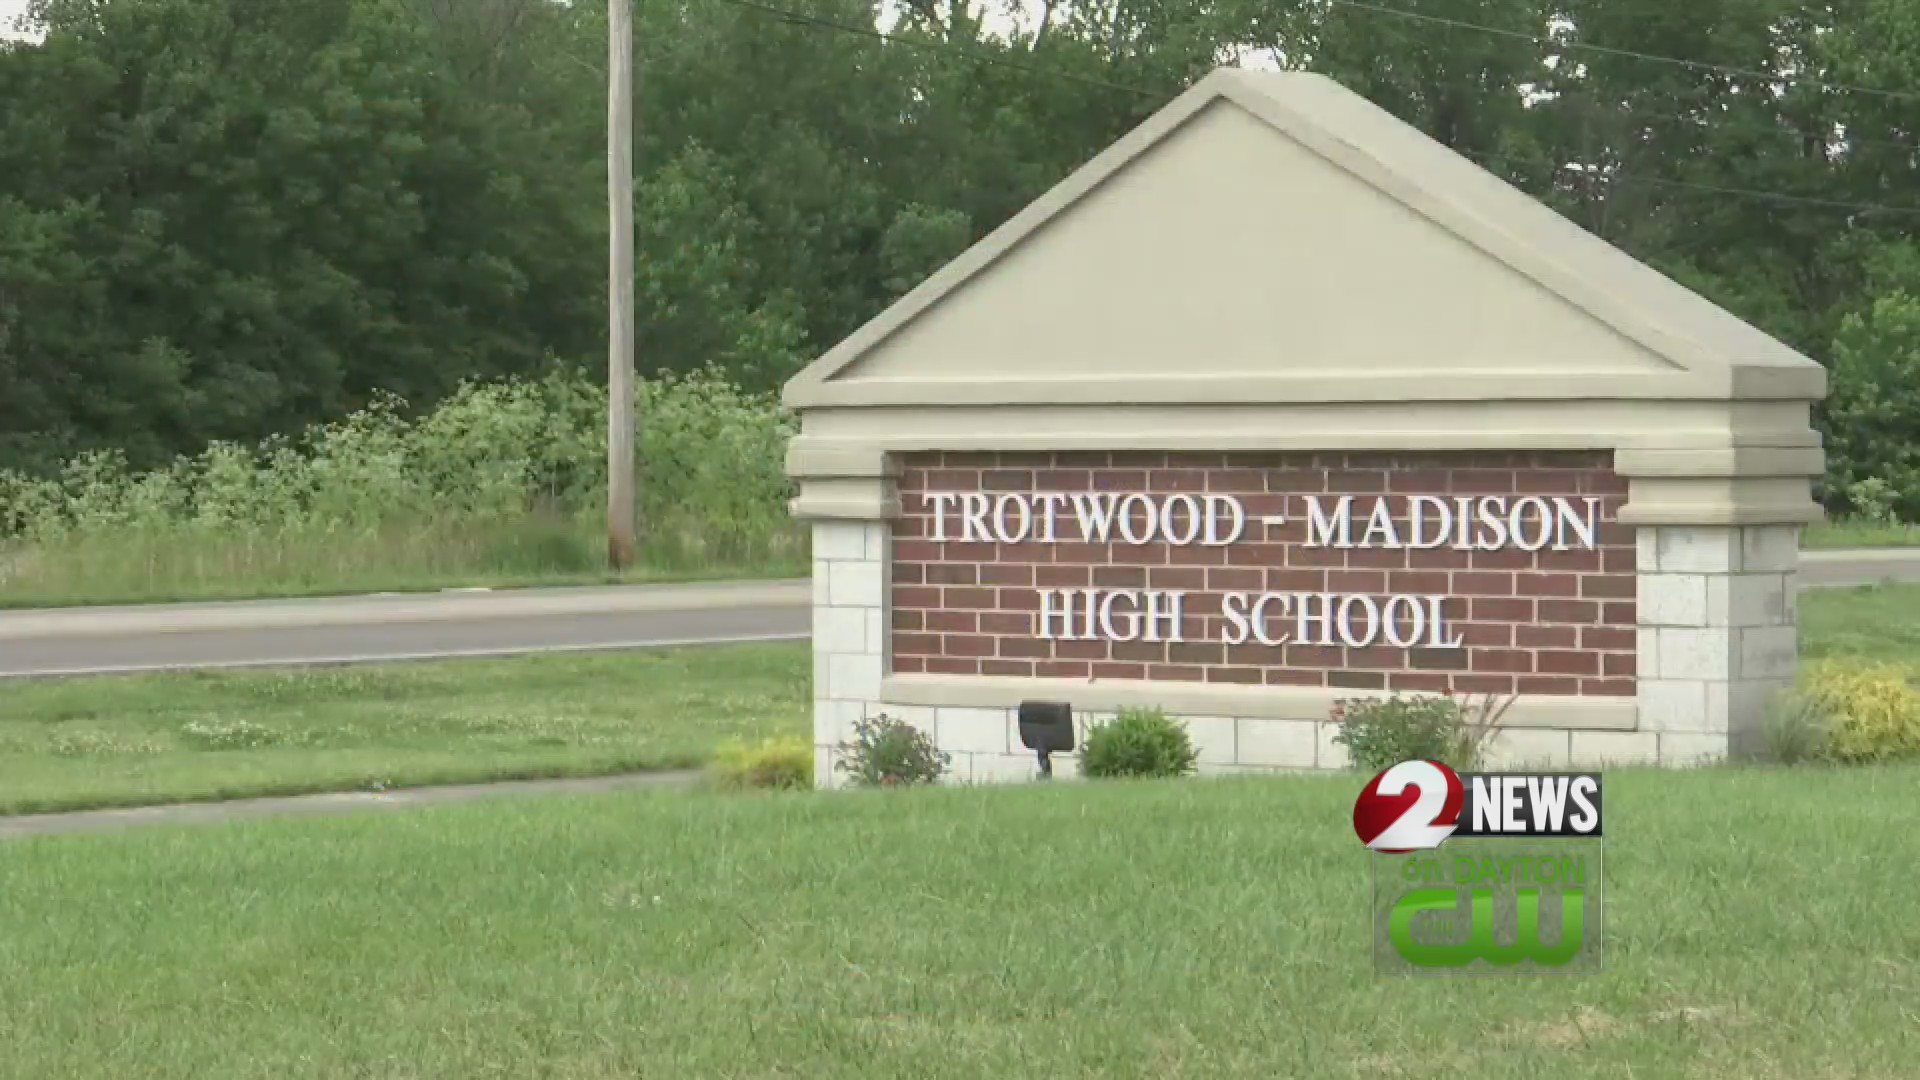 Trotwood-Madison High School